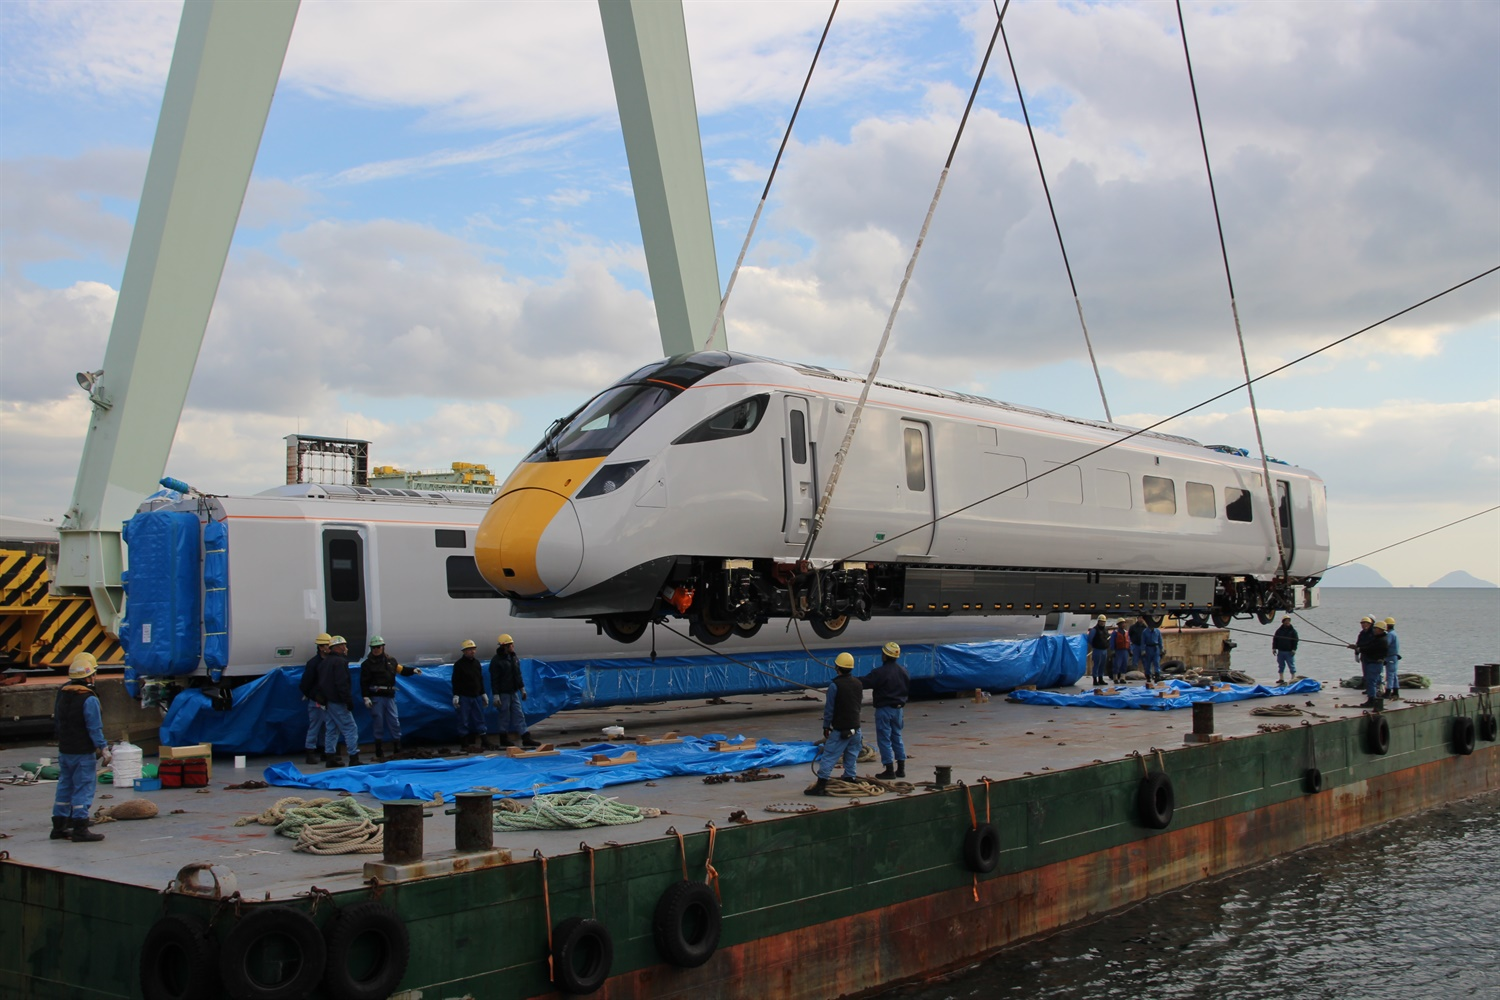 Shipment of Hitachi's first Class 800 train for IEP begins